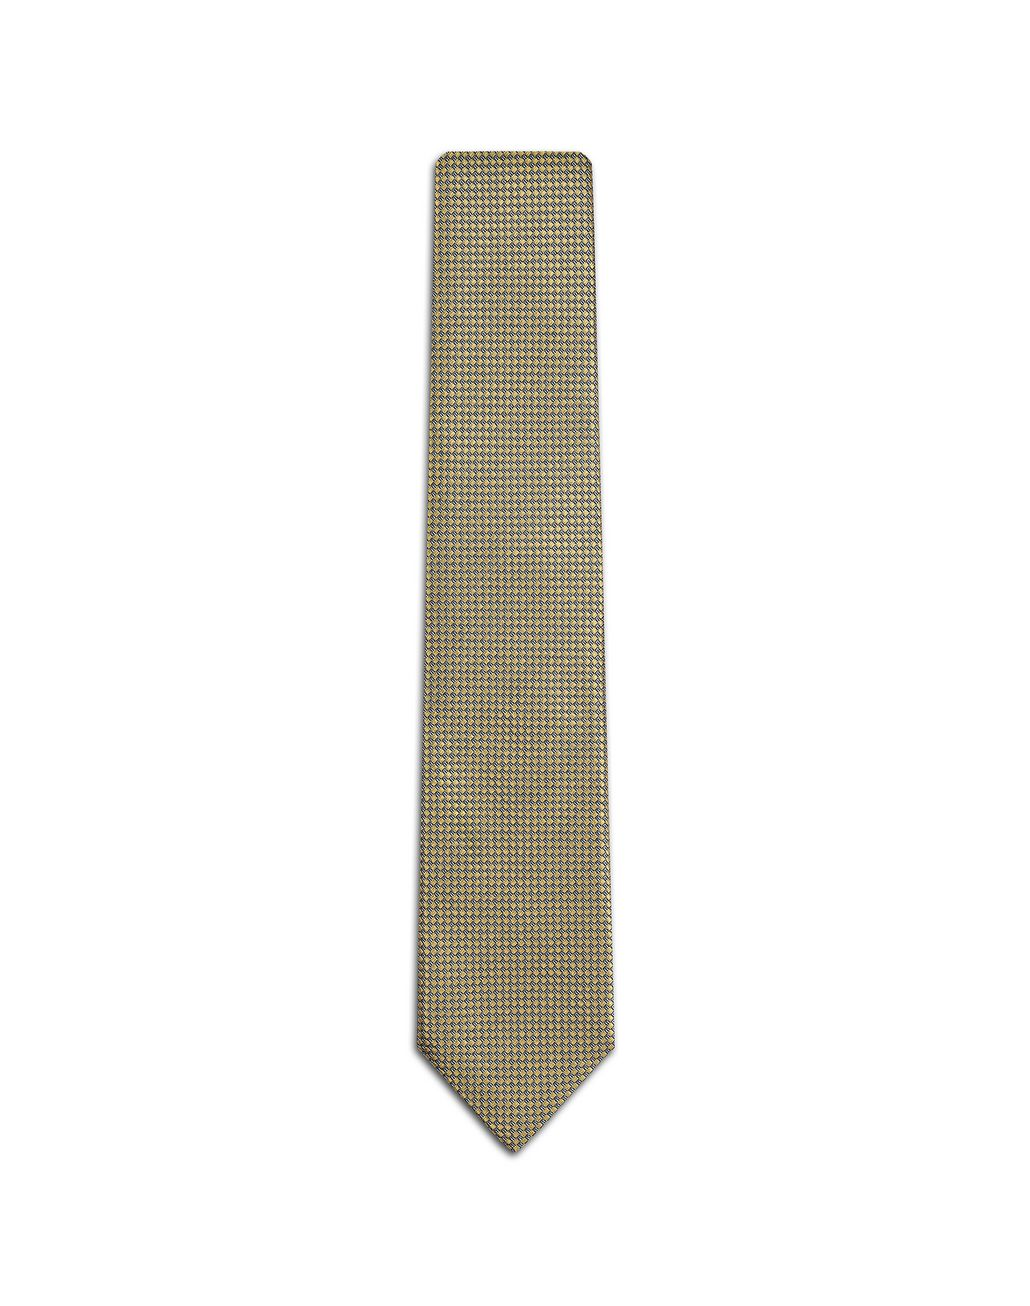 BRIONI Cravate à motif miniature jaune Cravate Homme f